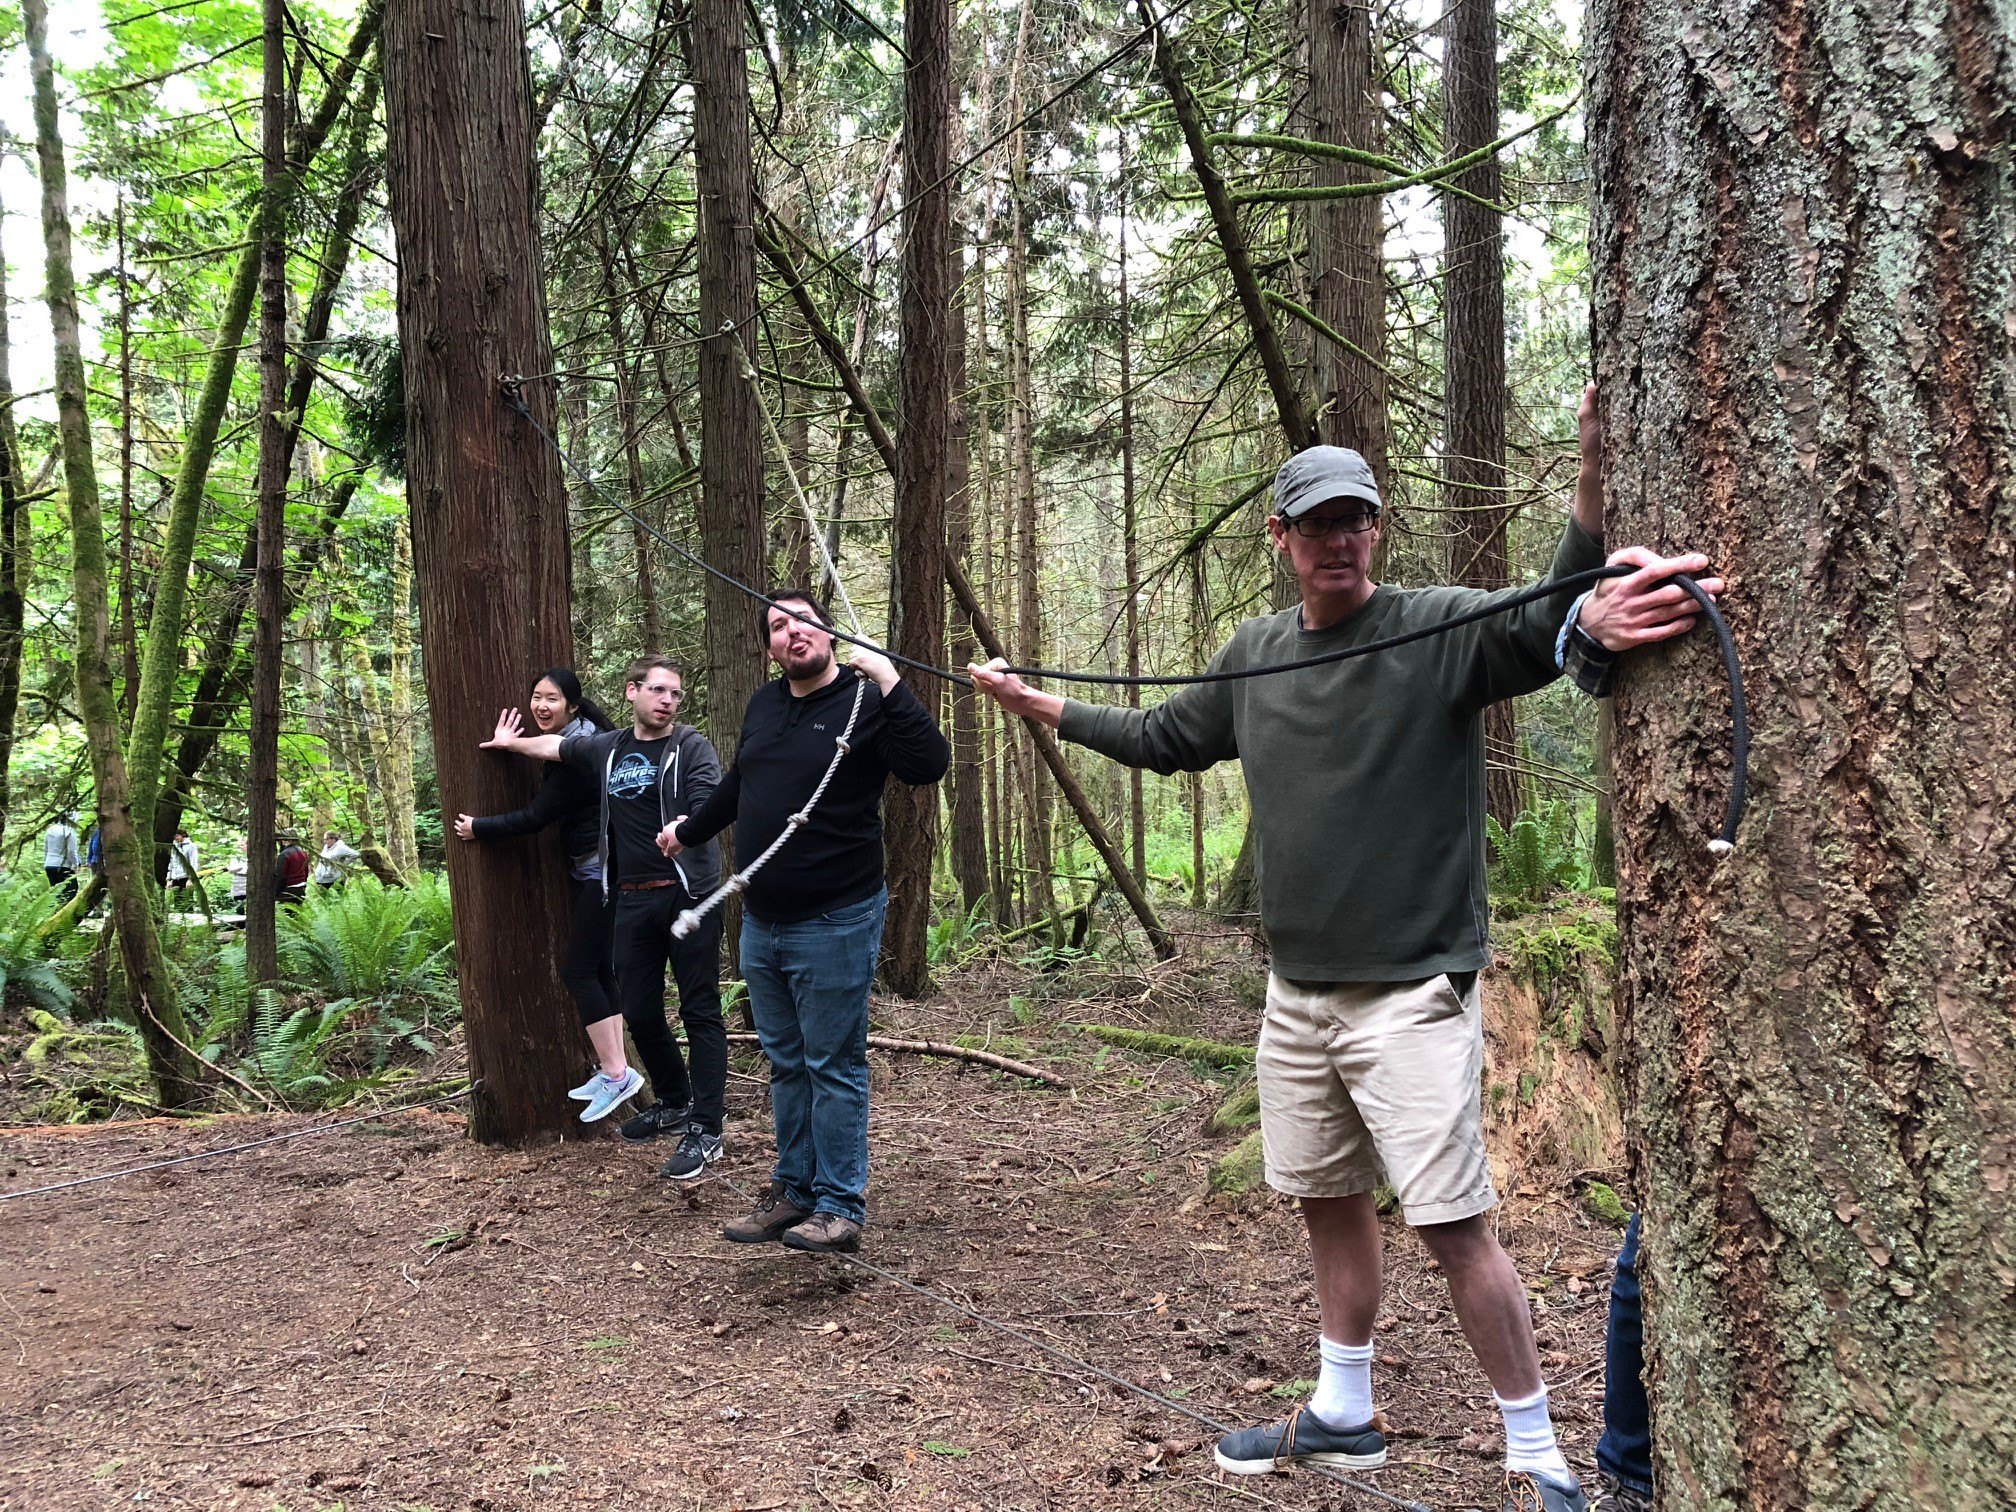 Almost done with the low ropes course